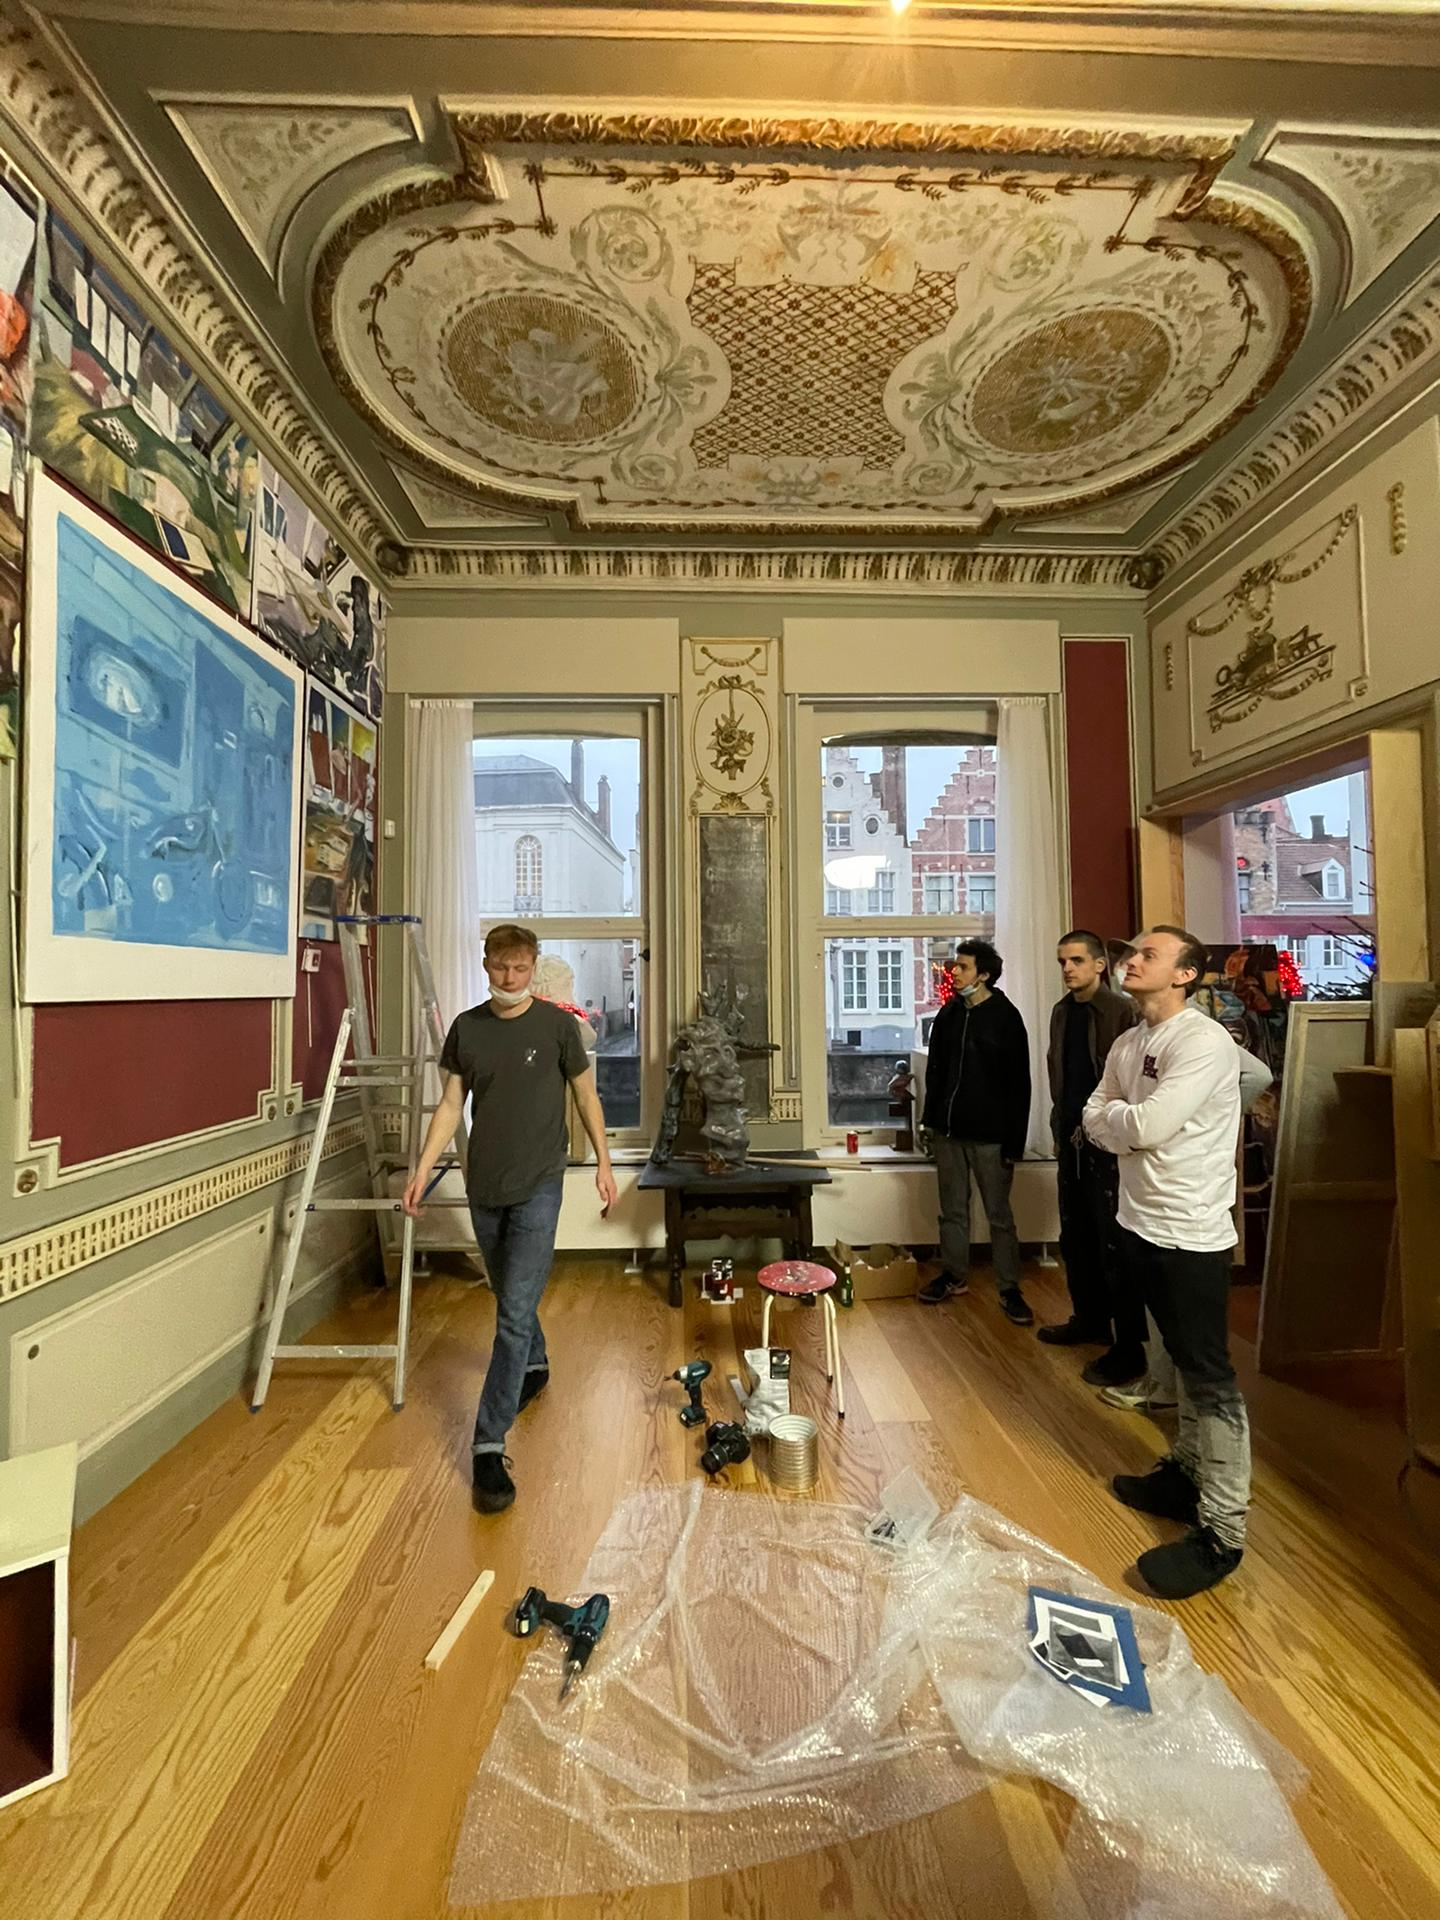 OPBOUW TENTOONSTELLING YOUNG FLEMISH MASTERS